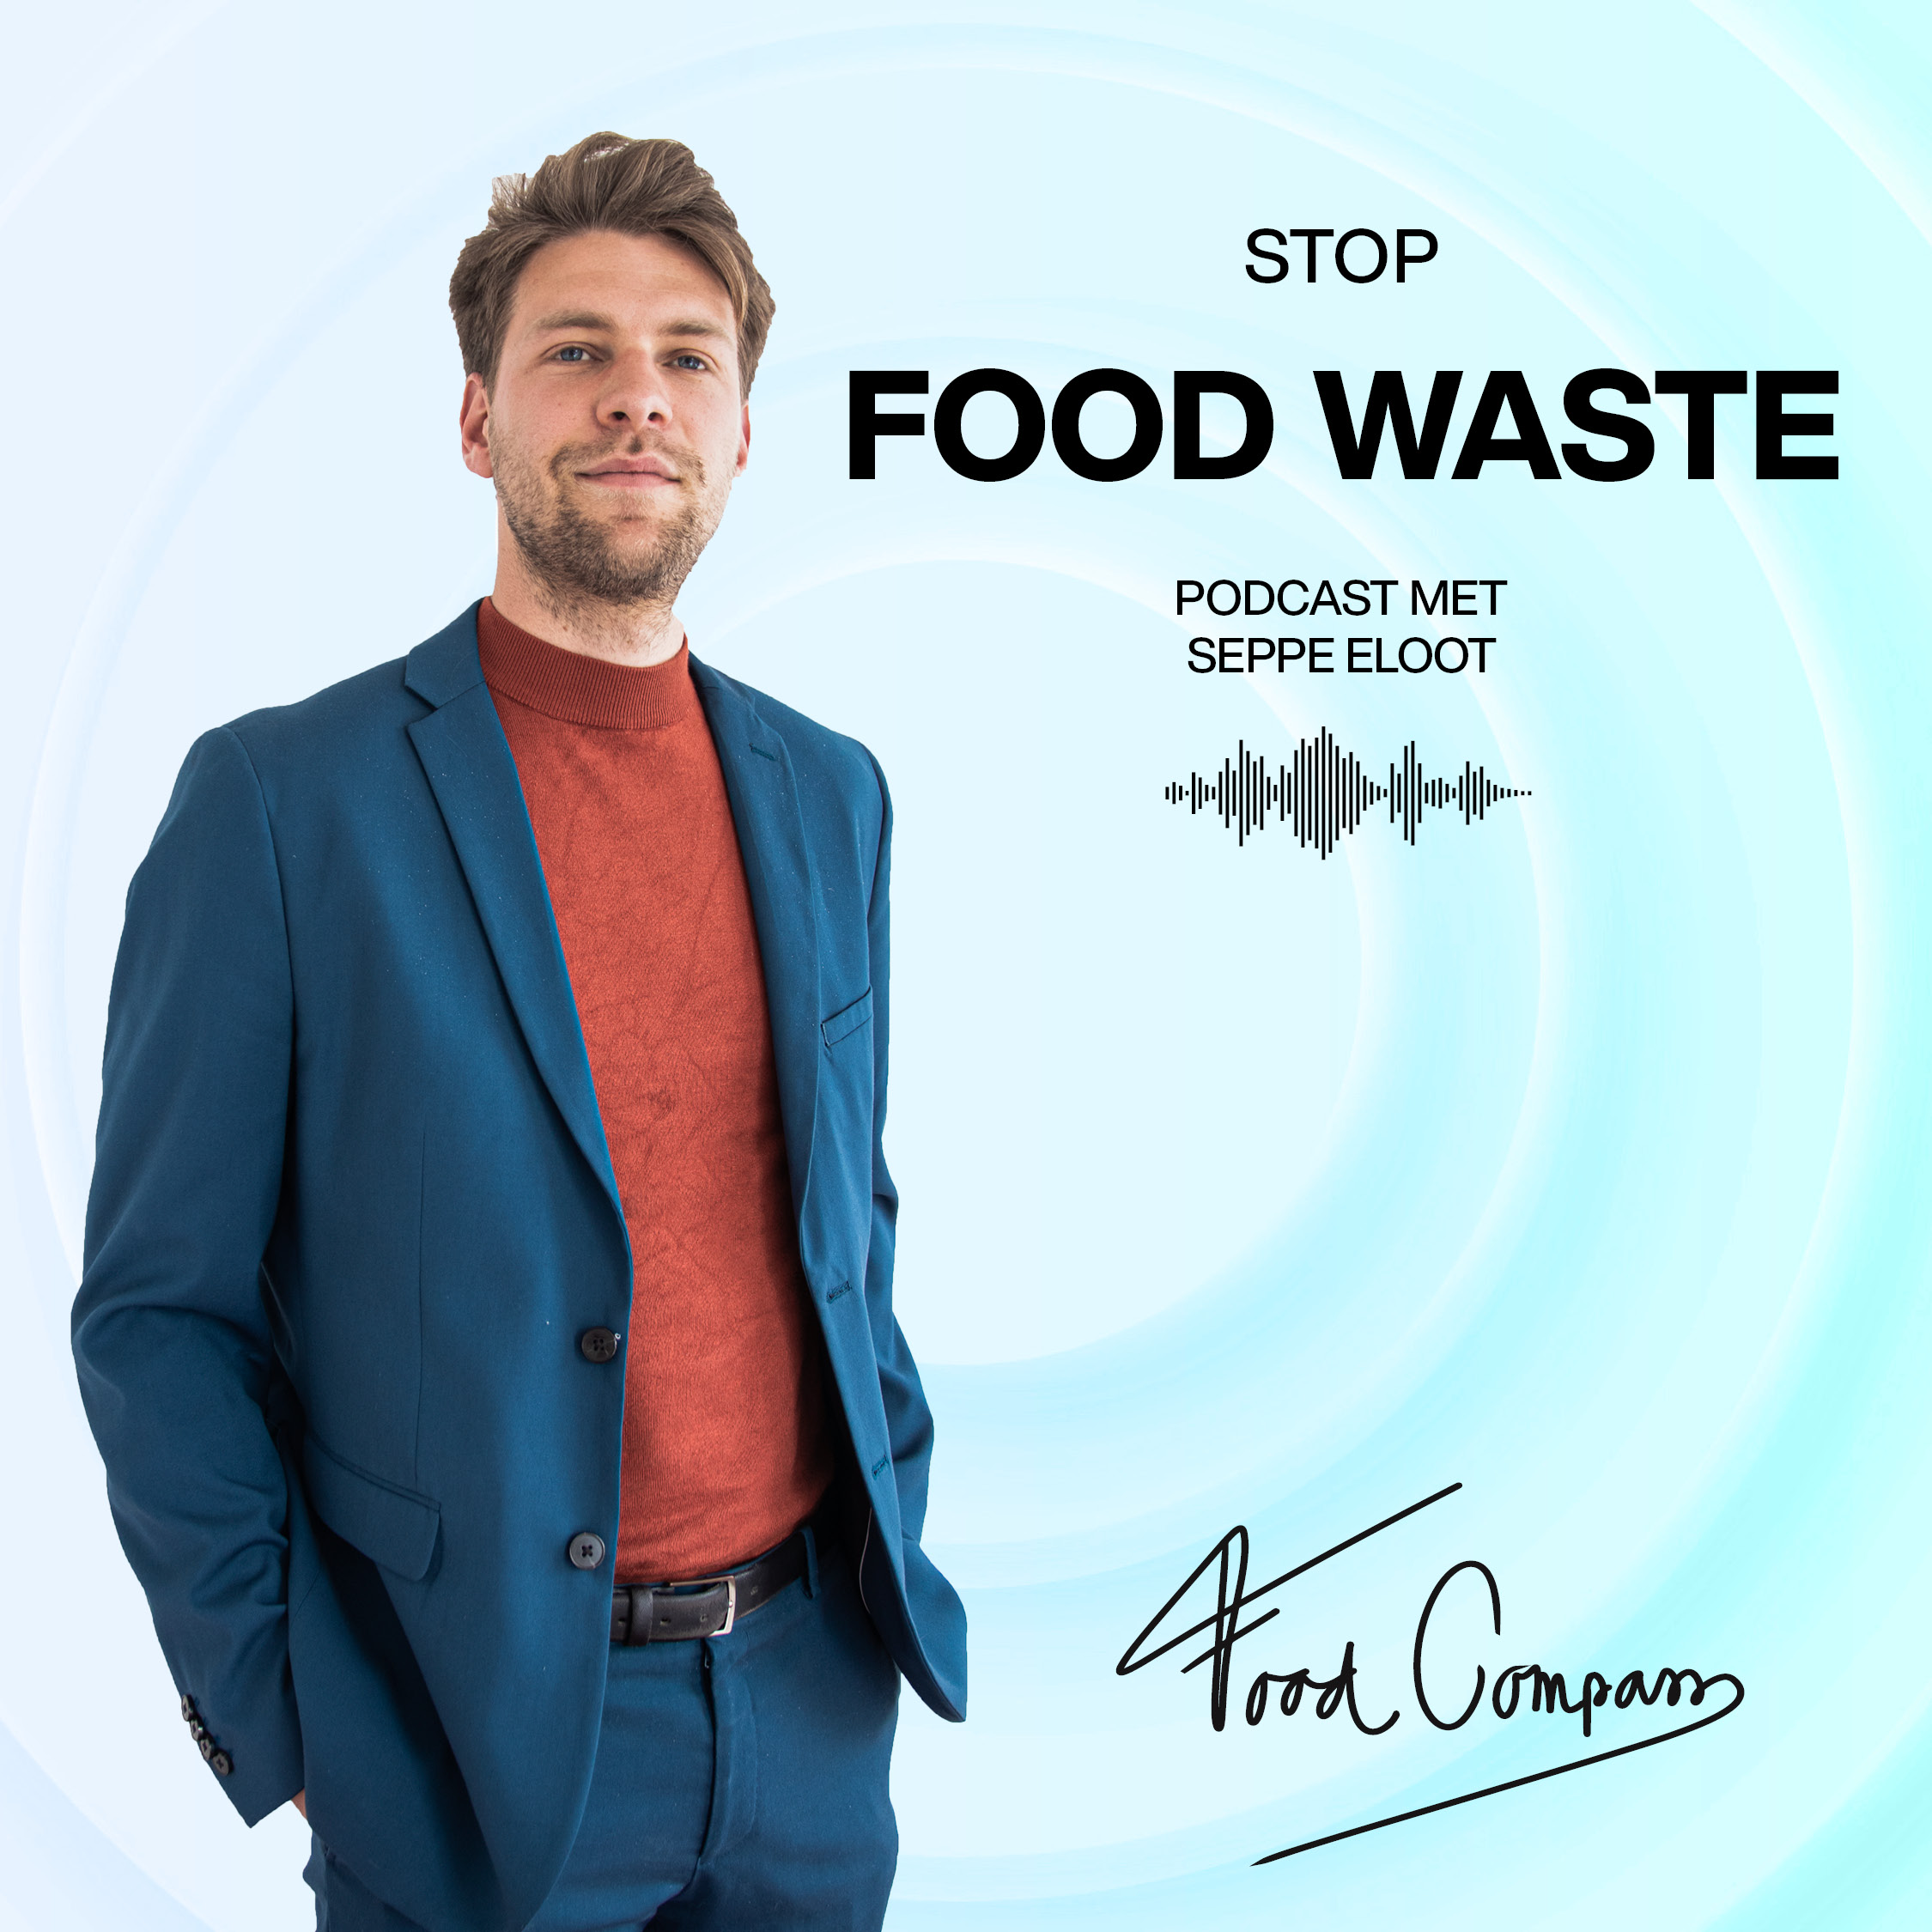 Artwork for podcast The Food Compass